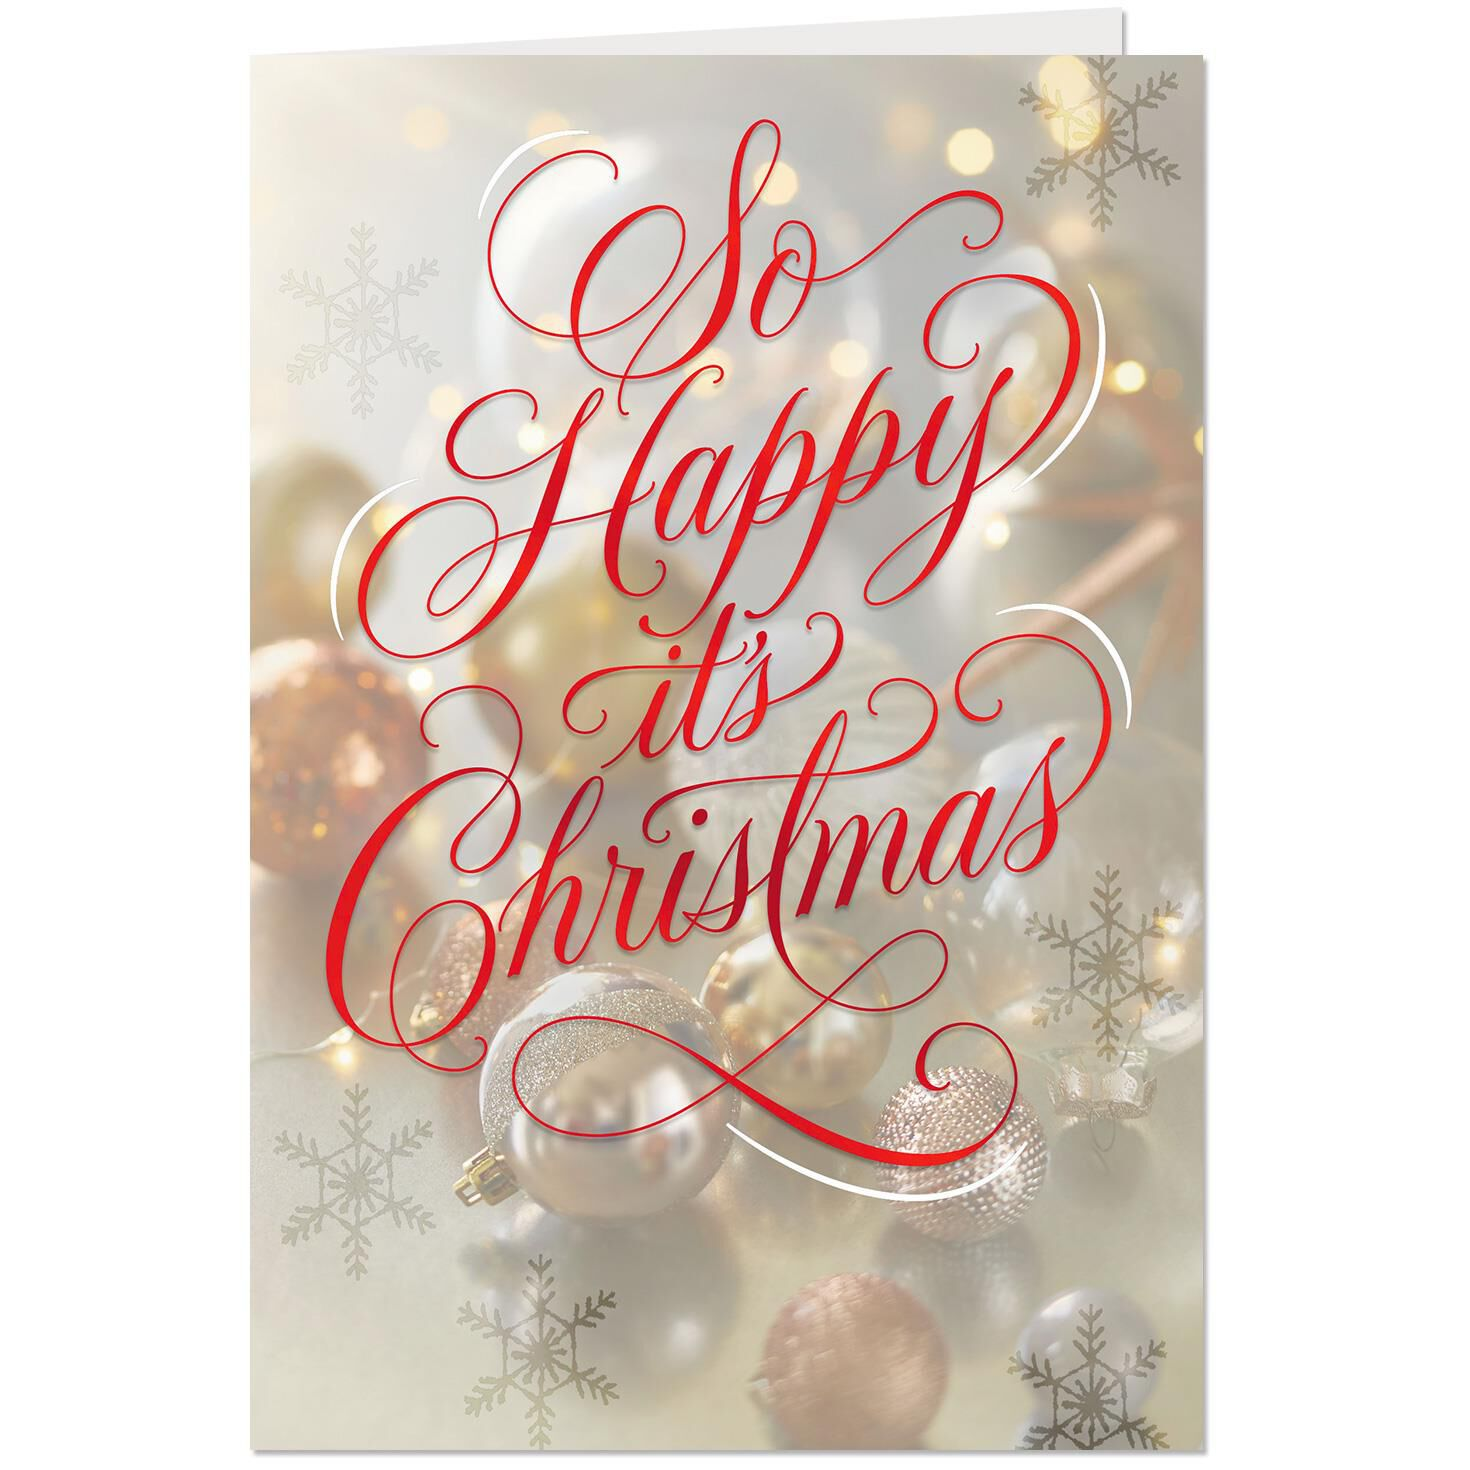 Wishing All of You a Memorable Christmas Song